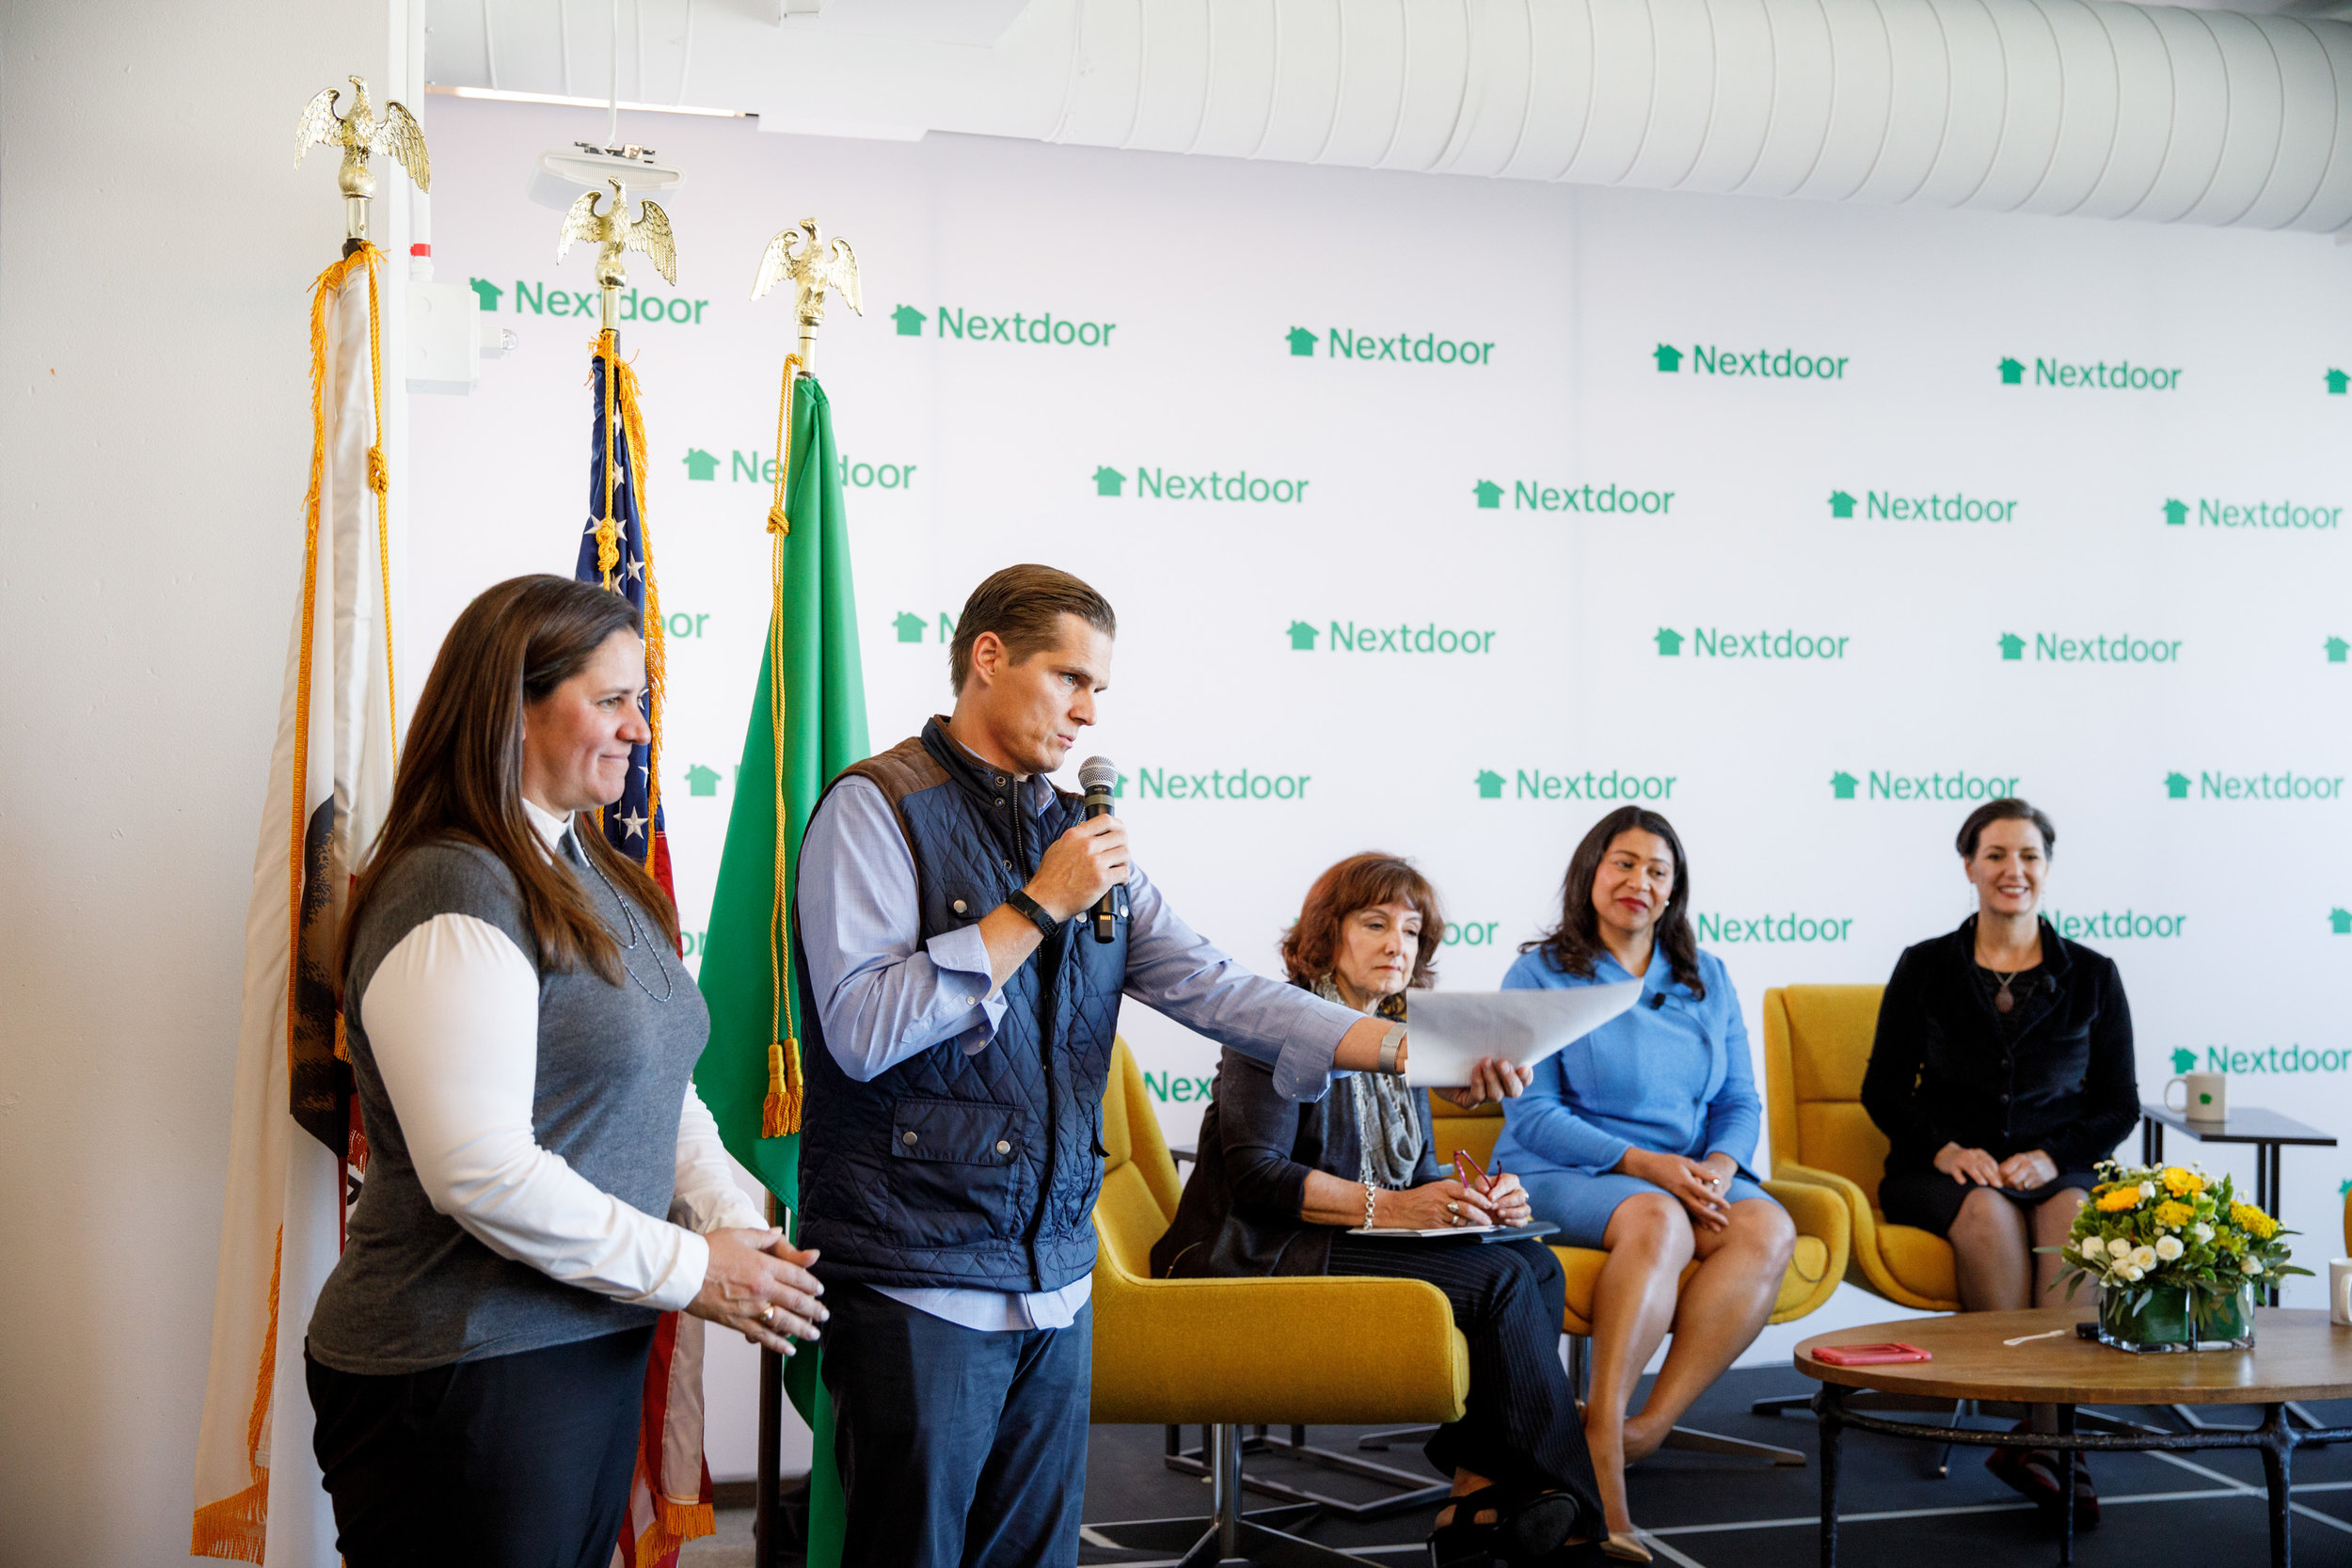 Nextdoor_MayorSummit_8-1-18-111.jpg